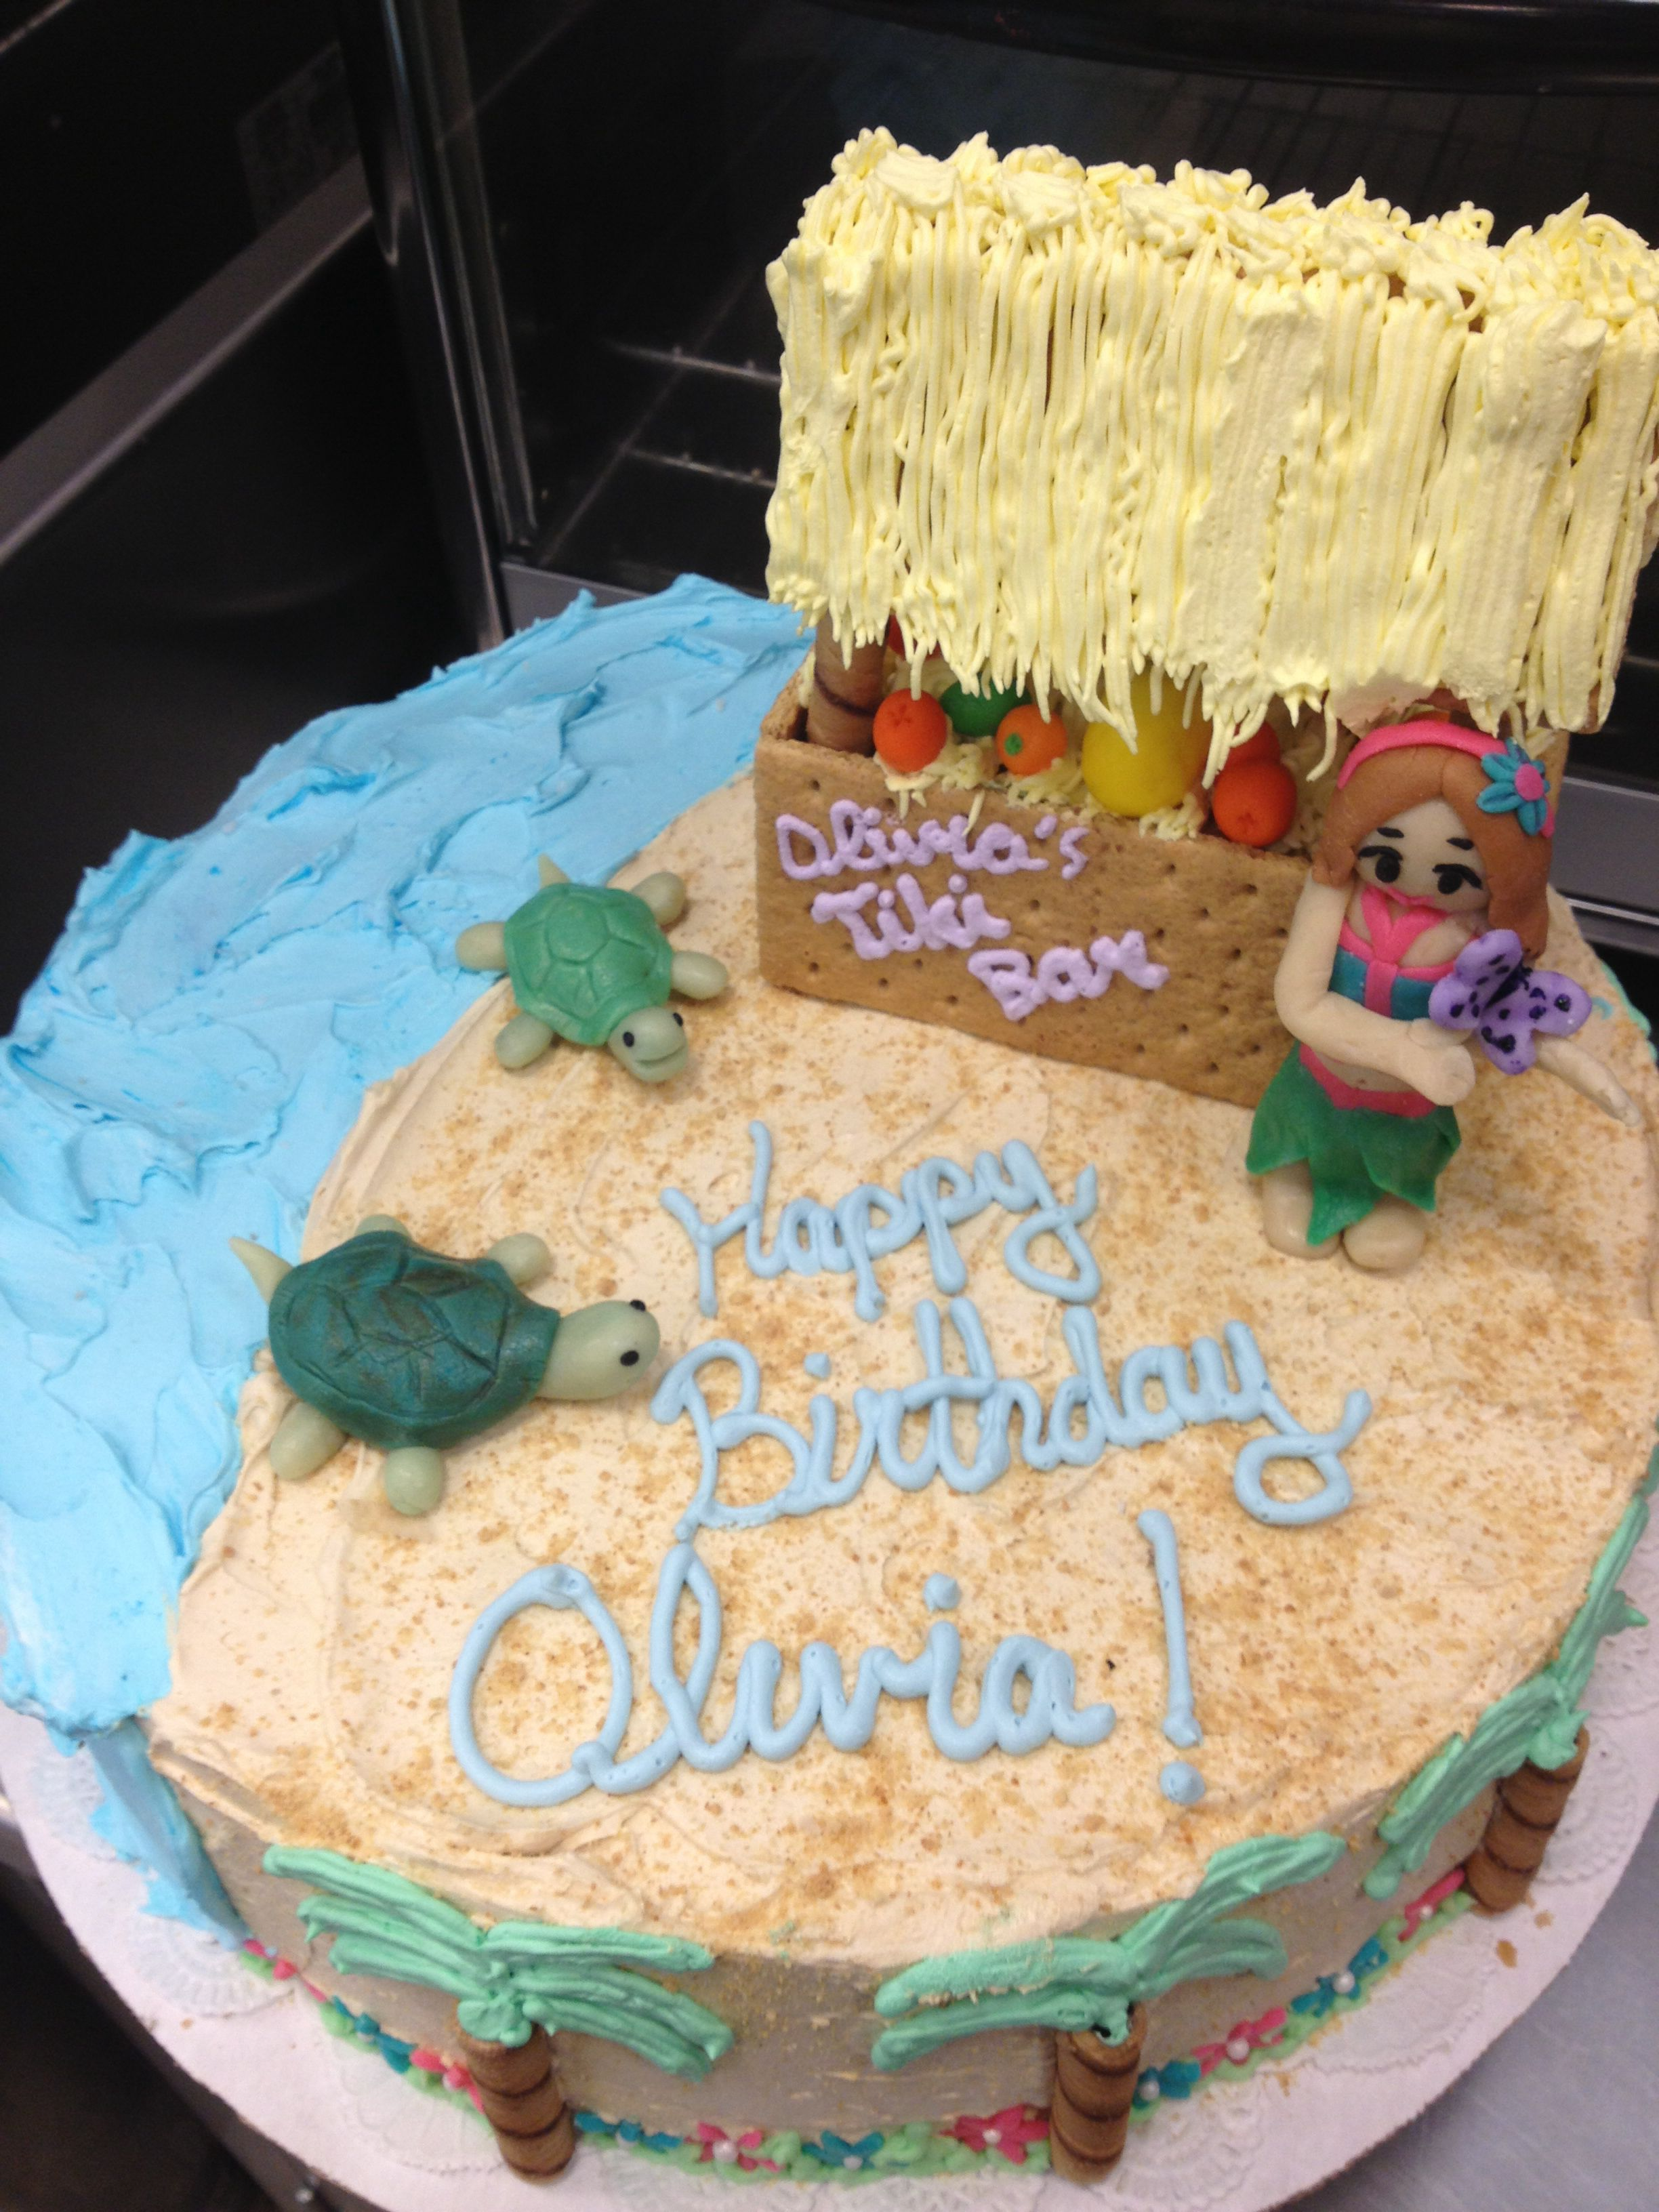 Hawaii cake. Ice cream with fondant decorations and graham